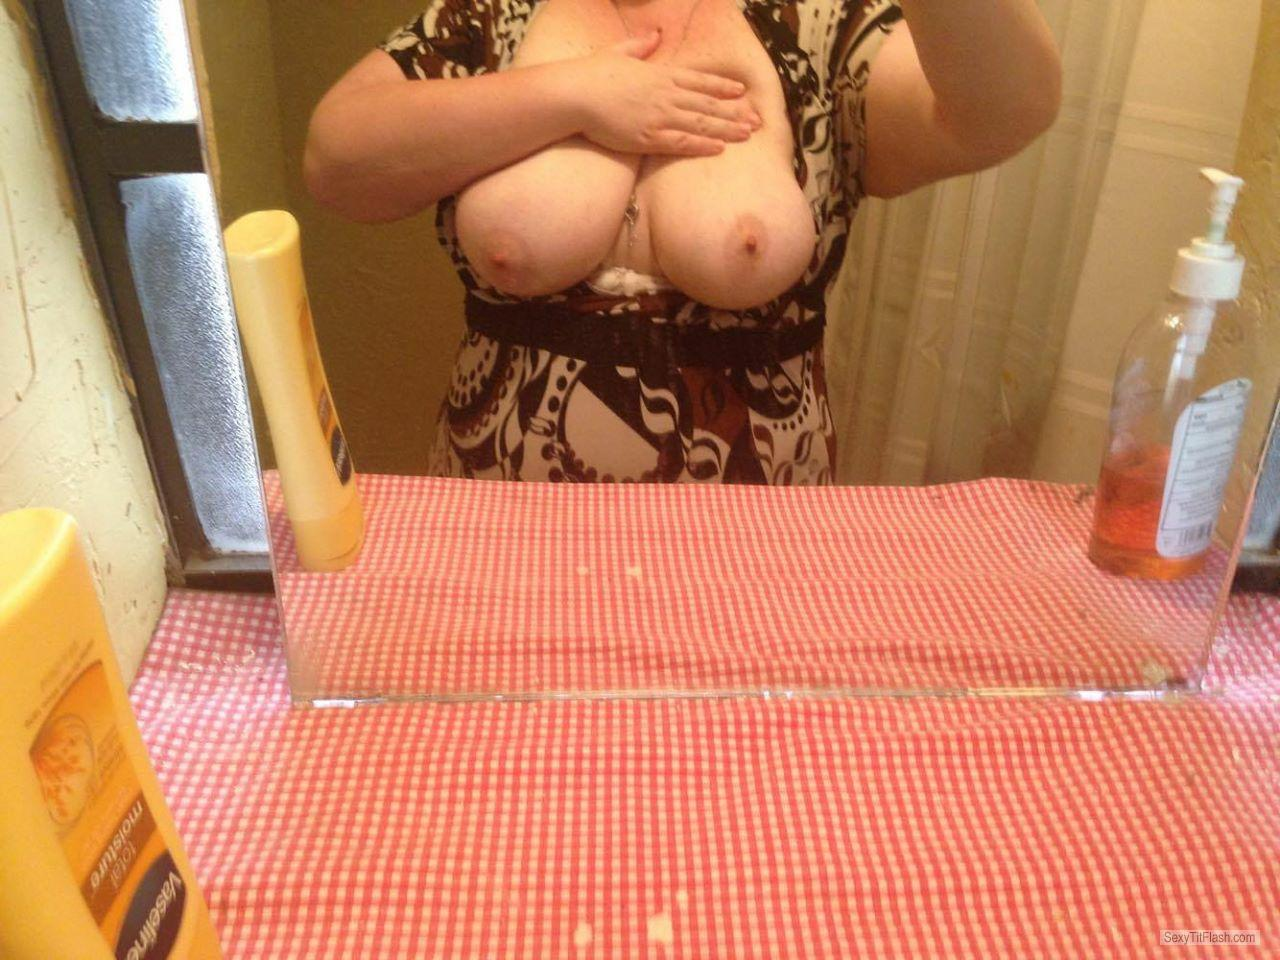 Big Tits Of A Friend Selfie by Woodshop